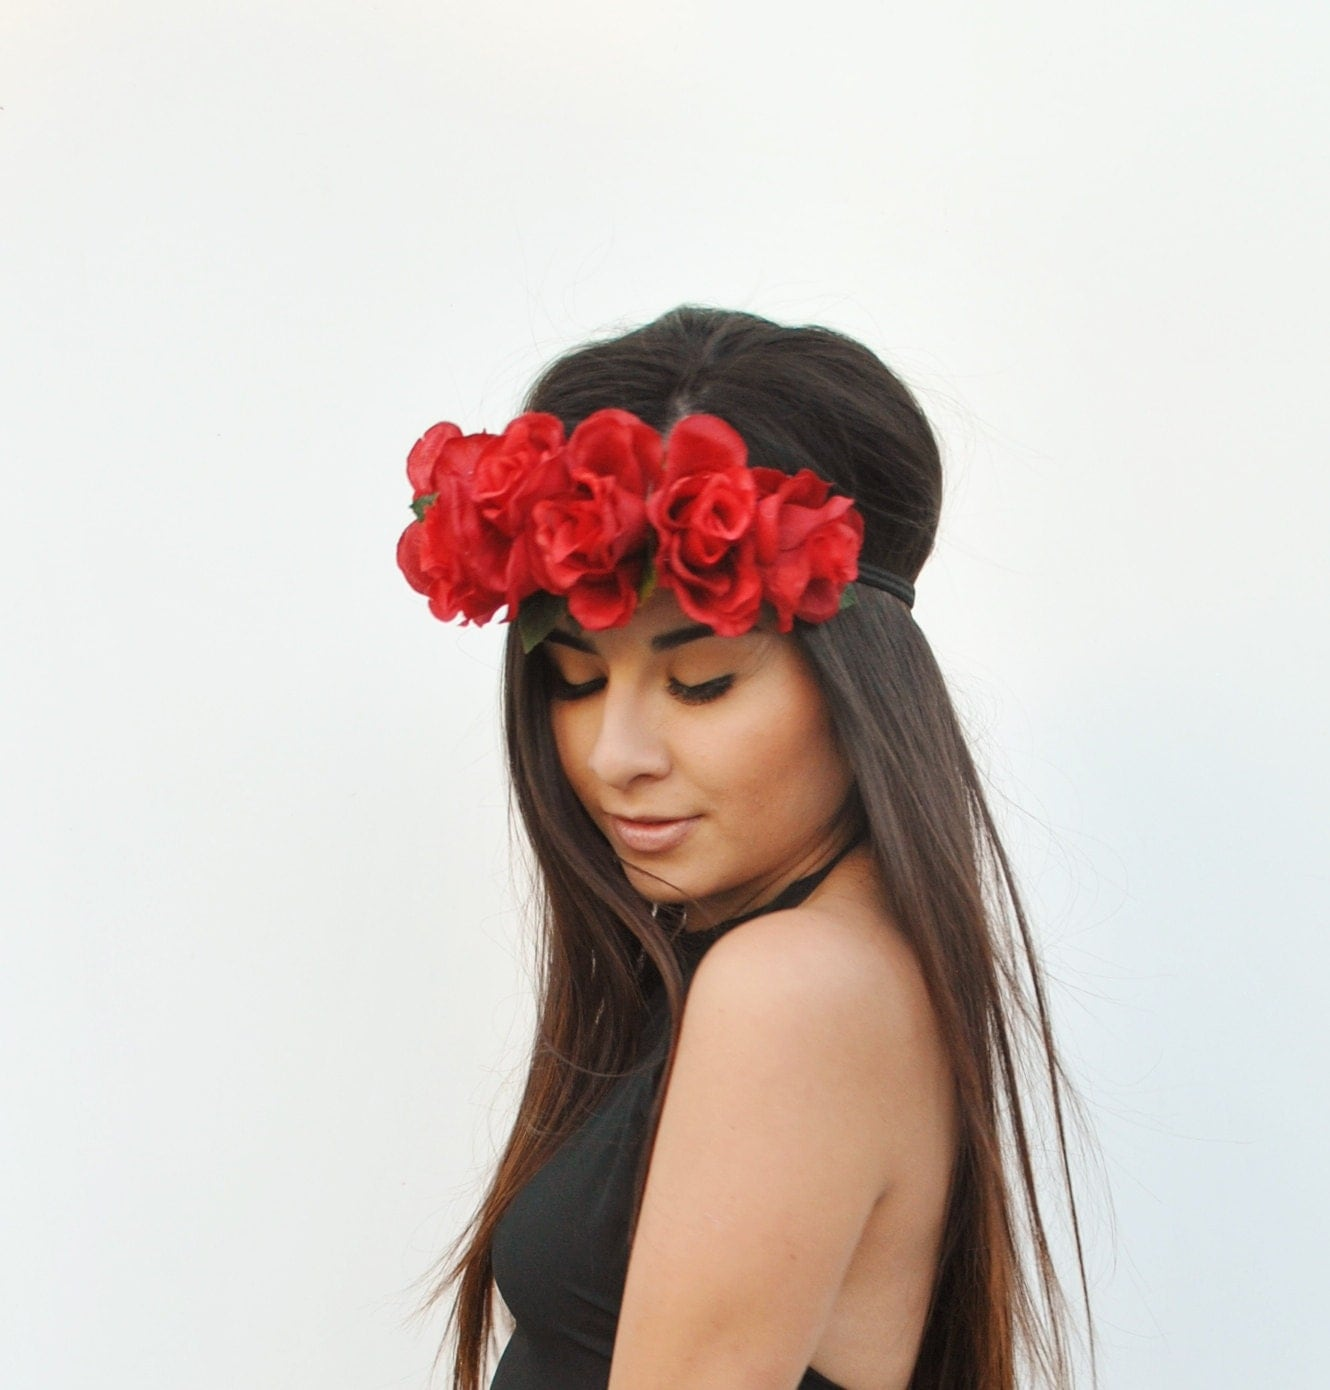 Rose flower red rose flower crown popular items for red rose crown on etsy izmirmasajfo Images